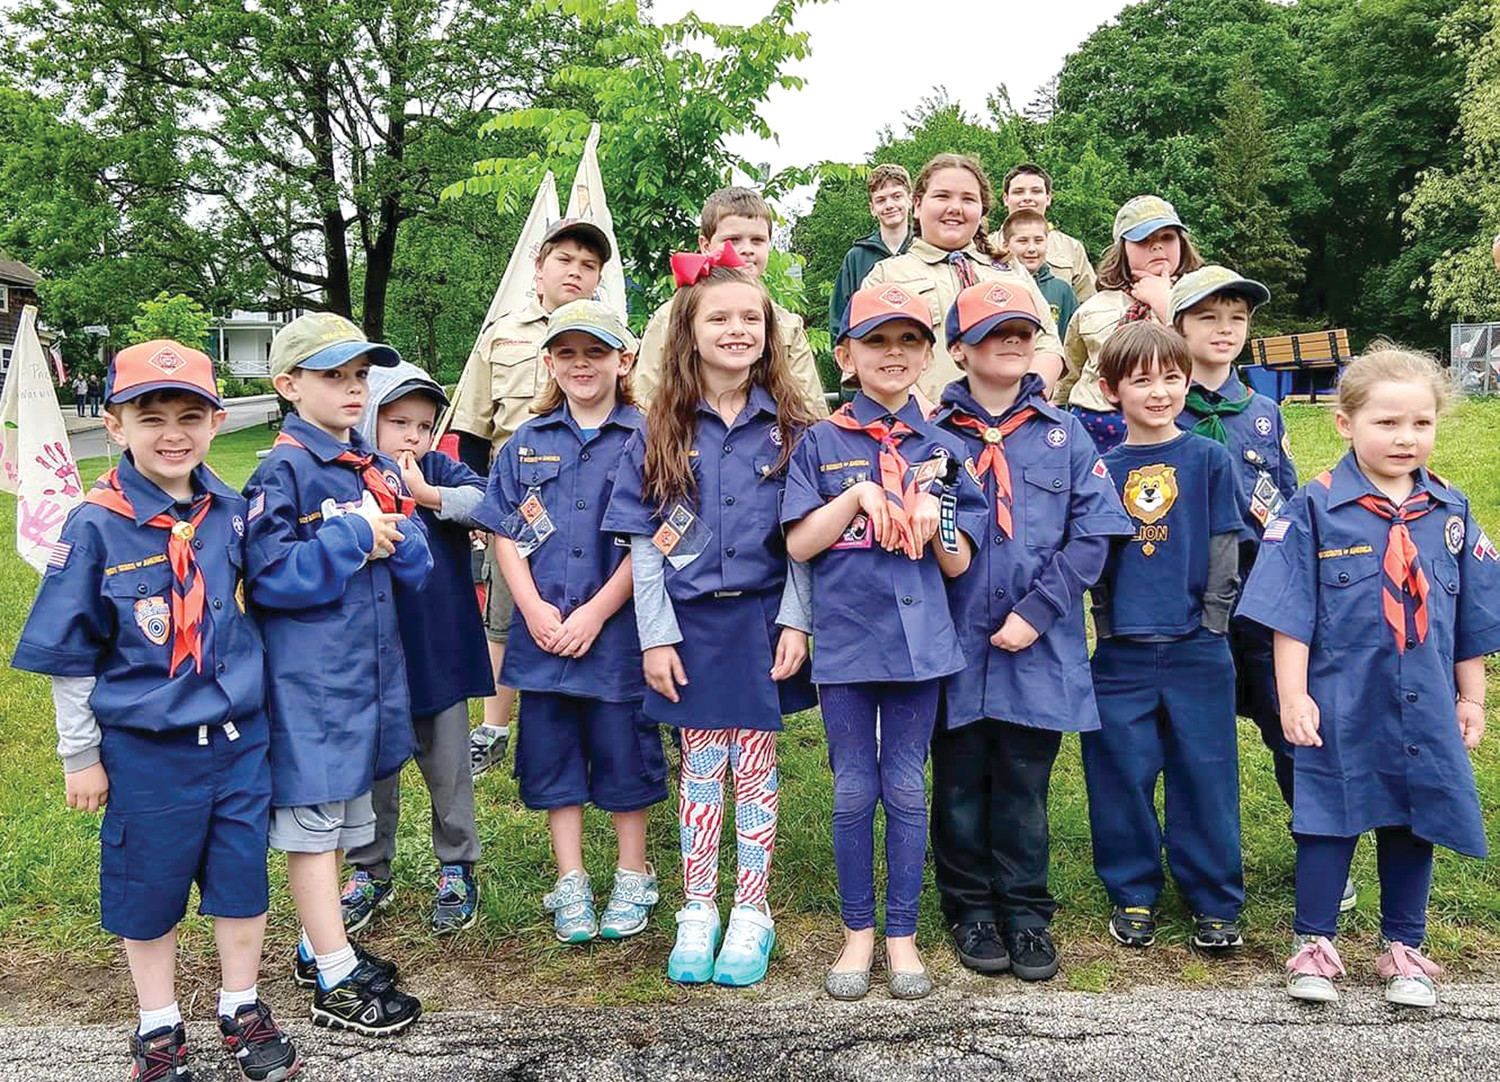 Pack 1 Warwick East Greenwich Memorial Day Parade 2018